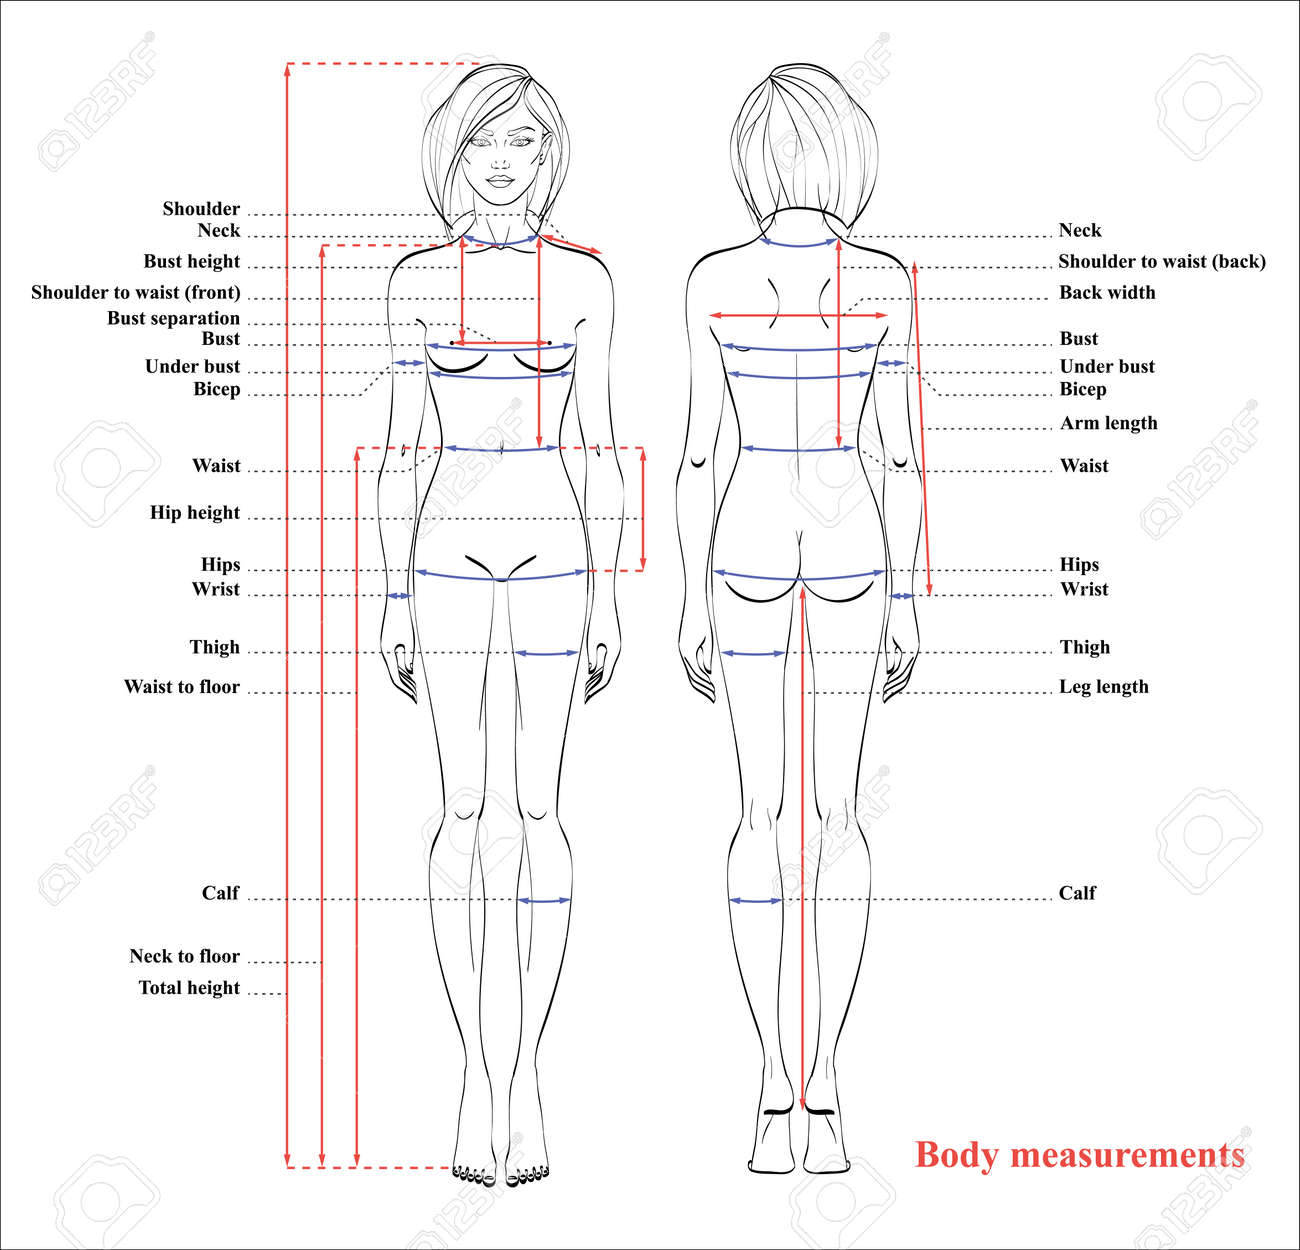 Standard Body Measurement Diagram Female - Car Wiring Diagrams ...